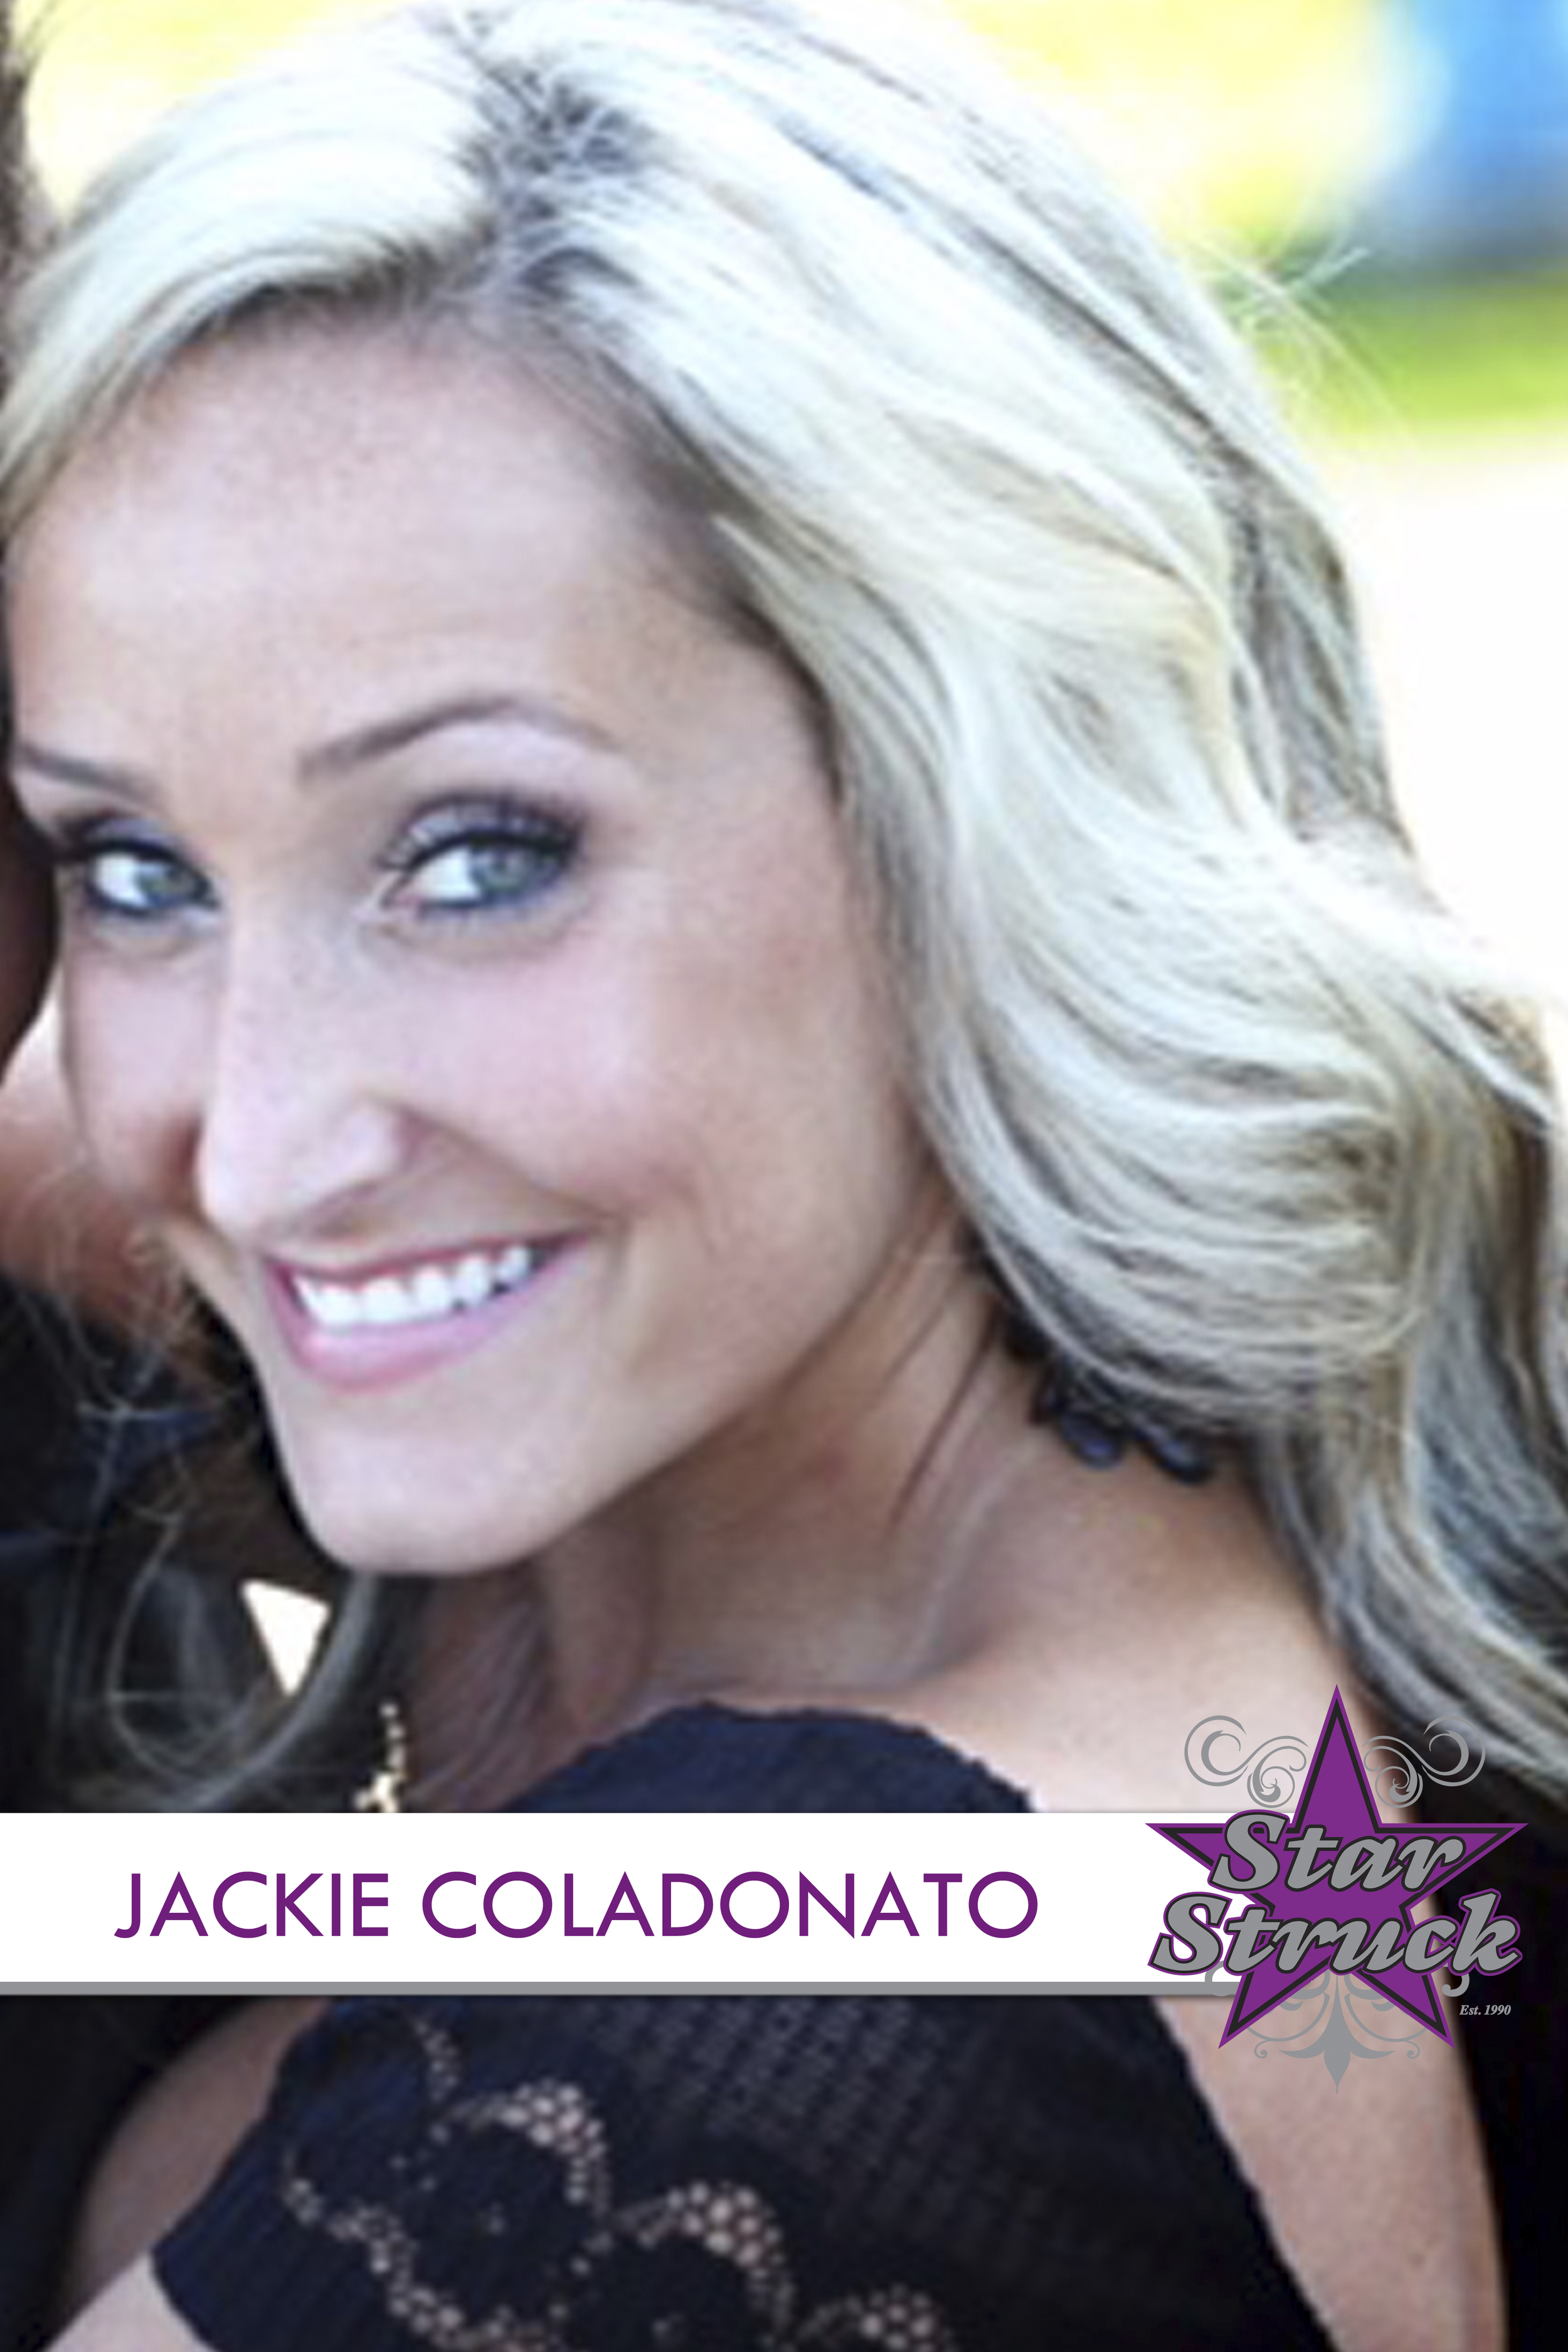 """JACKIE COLADONATO   Jackie Coladonato began her dance training when she was nine years old here at Star Struck Dance Studio. At the age of 17, she traveled with the Starpower Power Pak to Branson Missouri and Las Vegas Nevada and even performed with MC Hammer. Jackie soon wanted to take her shot at dancing professionally and auditioned for an NBA dance team. In 2006, she was hired by the New Jersey Nets as a Nets Dancer. She danced with them for four amazing seasons making unforgettable memories and forever friends. While on the Nets, Jackie learned from and trained under many notable names in the dance industry such as Luam, Jermaine Brown and Adar Wellington. Jackie also had the opportunity to travel with the Nets to Mexico City Mexico and London England where she danced, made appearances and promoted the NBA. Although she has retired in her professional career, Jackie has since married in 2012 and had a beautiful little girl in 2013. Jackie enjoys teaching and sharing the art of dance with all of her students here at star struck. """"It takes an athlete to dance, but an artist to be a dancer"""""""